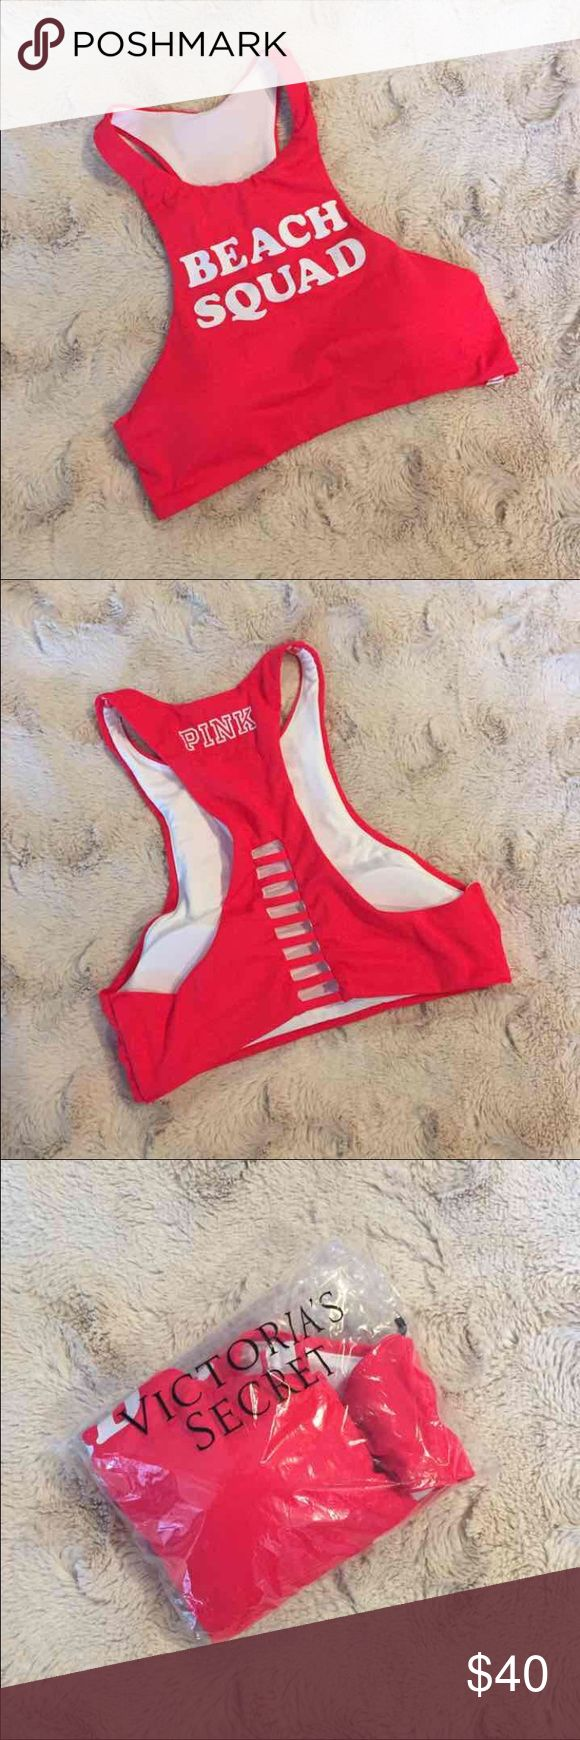 """LAST ONE!  High-Neck Swim Crop Style: High-Neck Swim Crop Top """"Beach Squad""""   Discount offered on all bundles!    Please use the offer button (I will not negotiate prices in listing comments).    NO TRADES!   *Stock photos show example of style only. Actual picture and color of item is shown in 1st photo.   Related: VS, VSX, Victoria's Secret, PINK, Swim, Bikini, Bathing Suit, Beachwear, Swimwear, Two Piece, Follow Me, Follow Game PINK Victoria's Secret Swim Bikinis"""